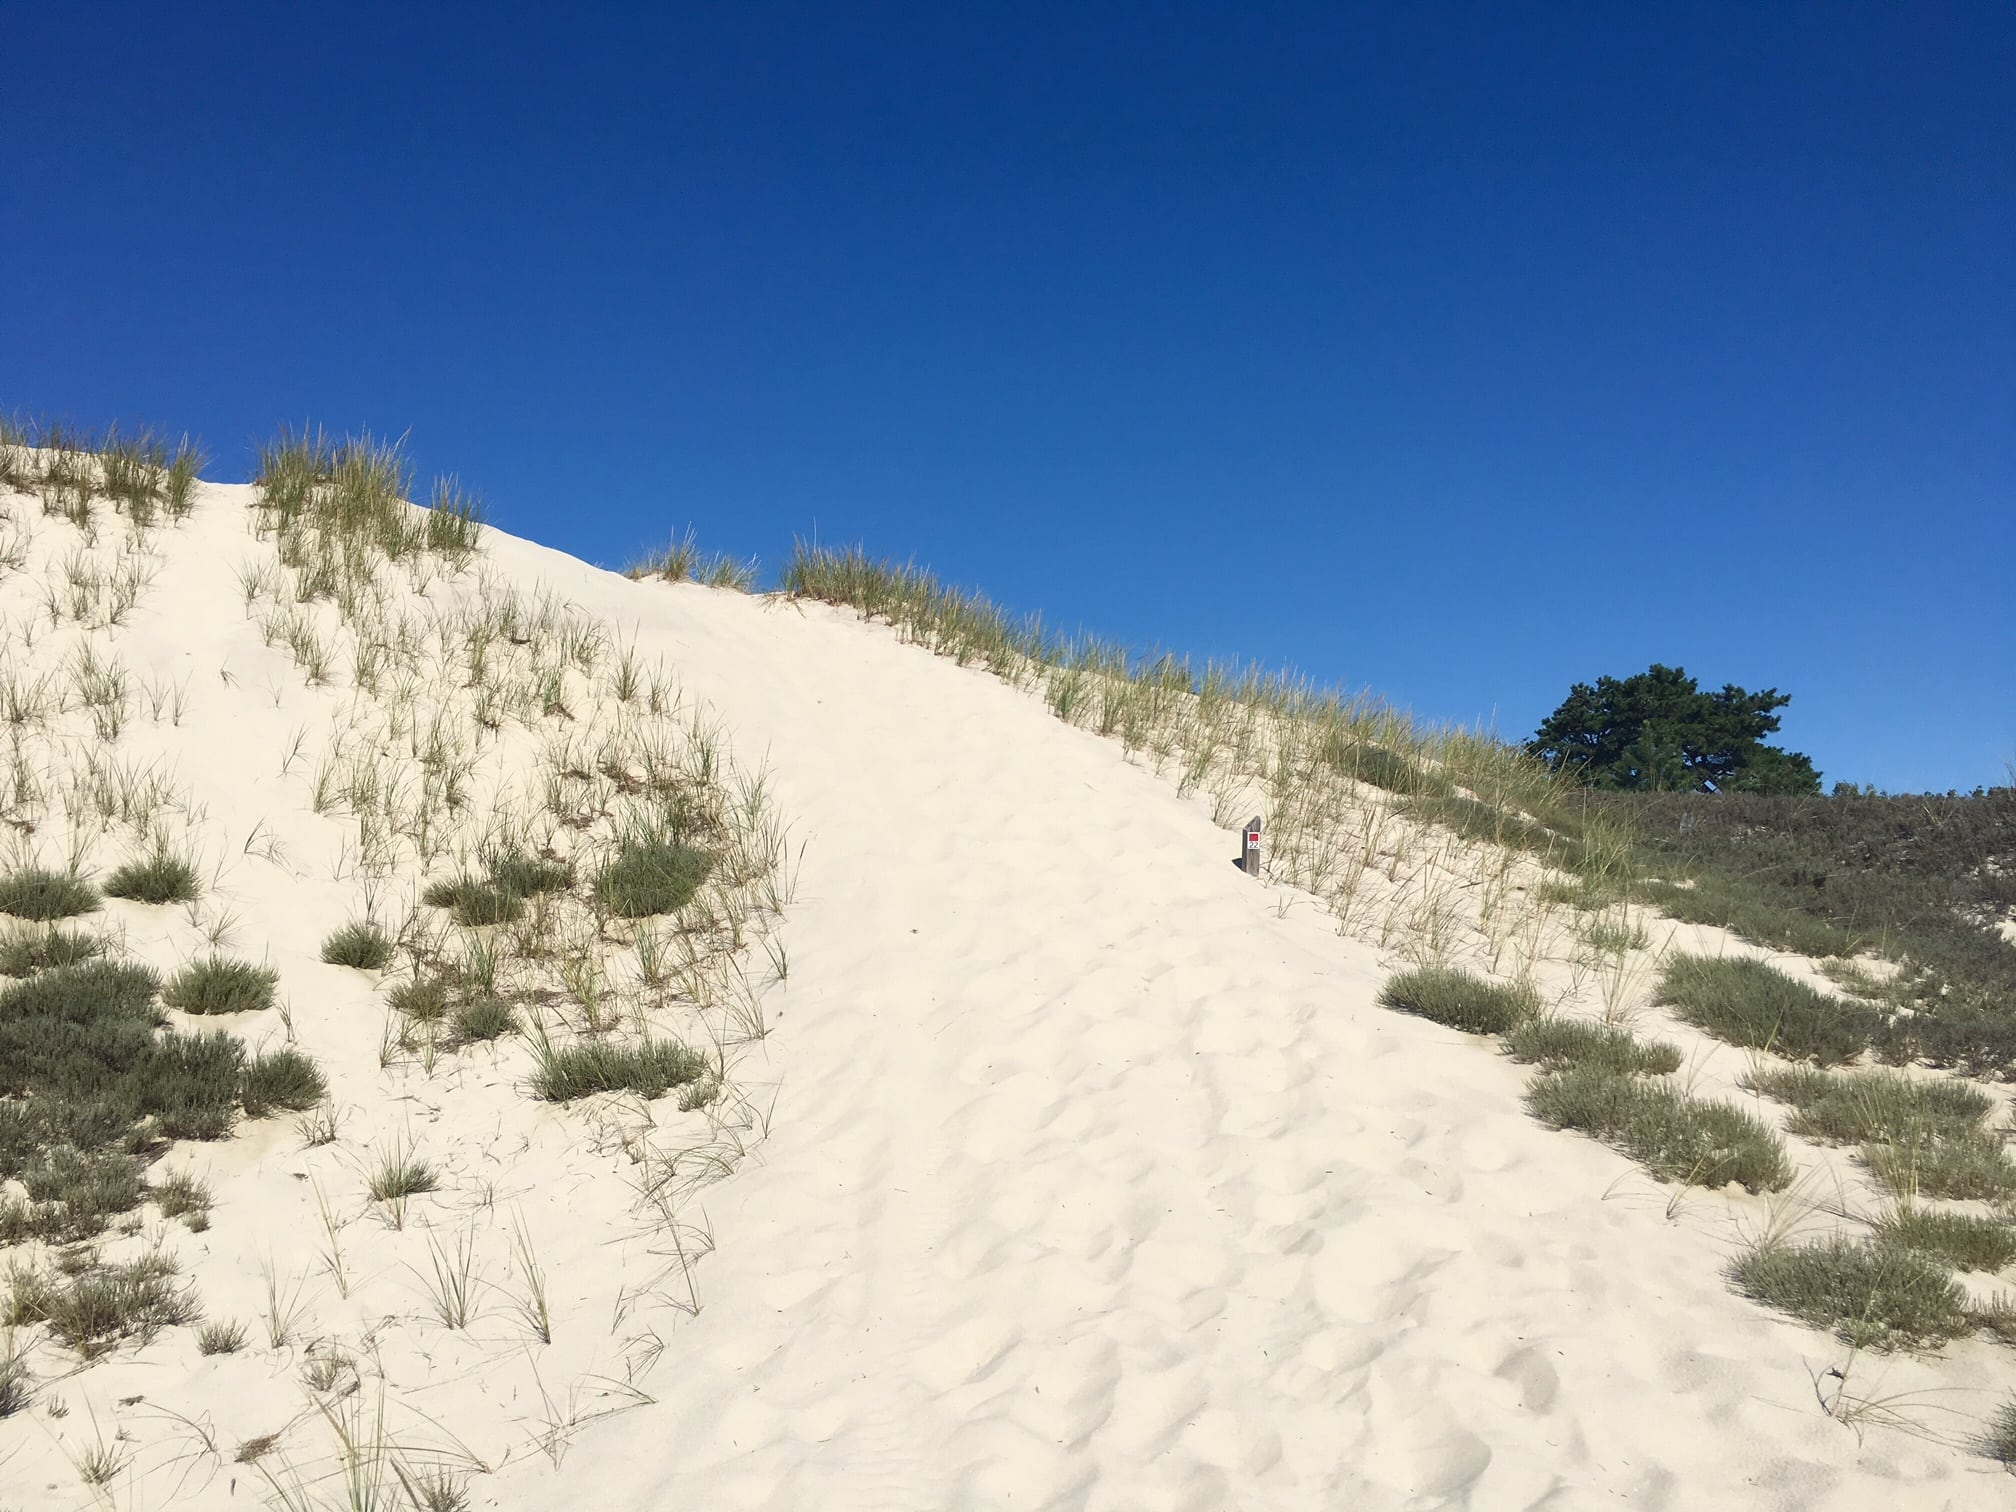 At post 22, you get to walk down a dune. After a lifetime of having it drummed into me that I must never EVER walk on the dunes, I was almost unable to do it. I dug deep, overcame mu early indoctrination, and did it.